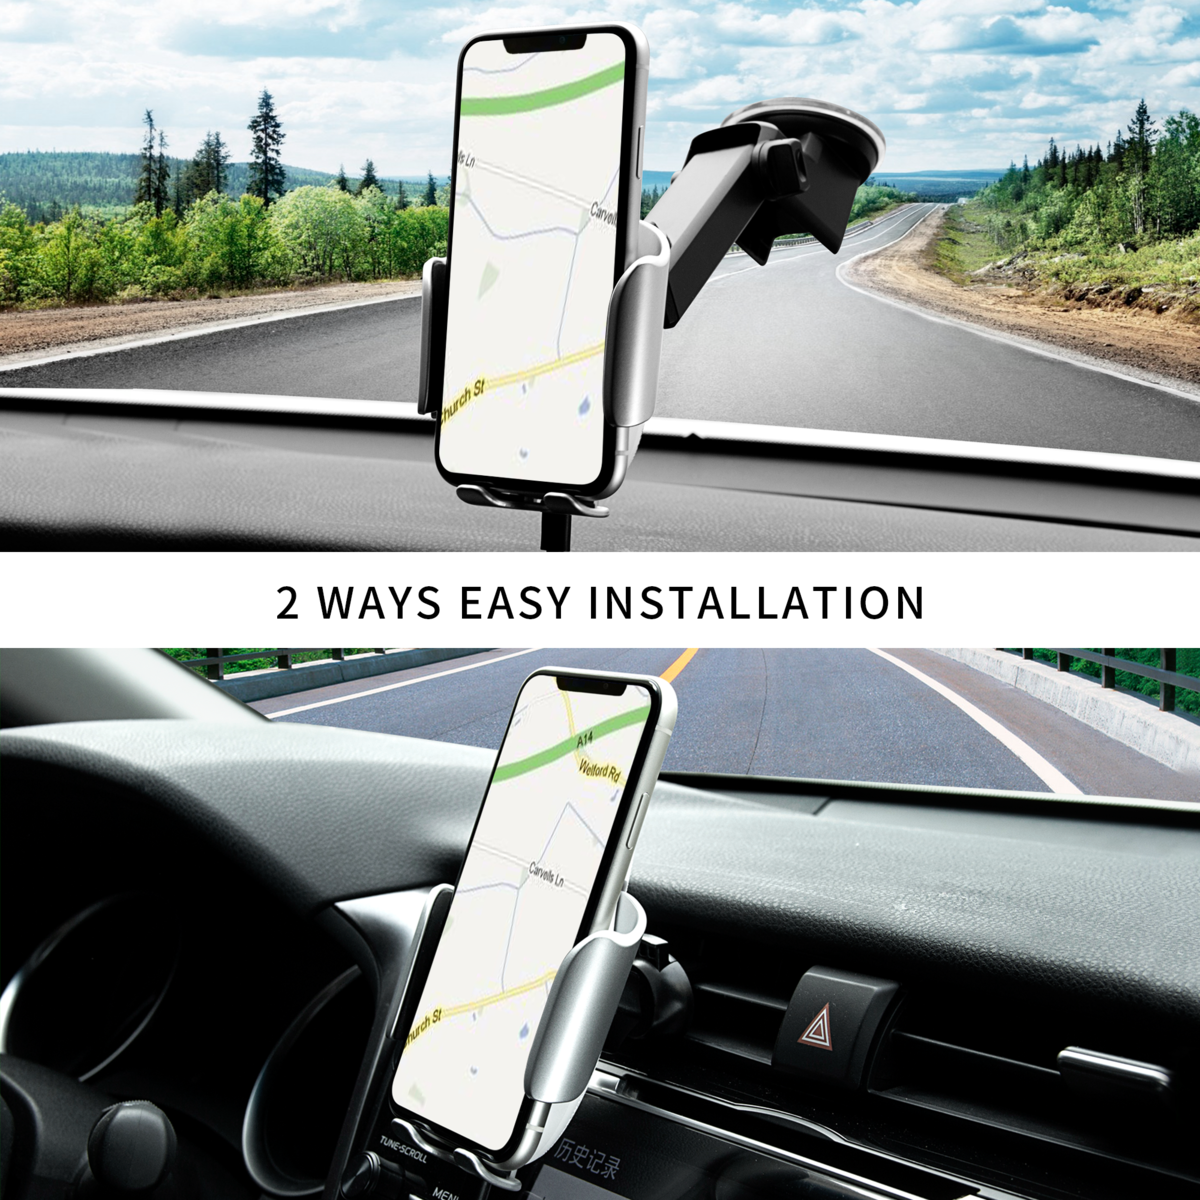 8M Wireless Car Charger Mount Auto Clamping – Cute Bear Design All in One Car Mount Wireless Charger I QI Wireless Charger Car Mount I 15W Fast Charge Wireless Phone Charger for Car I a Friend in the Car